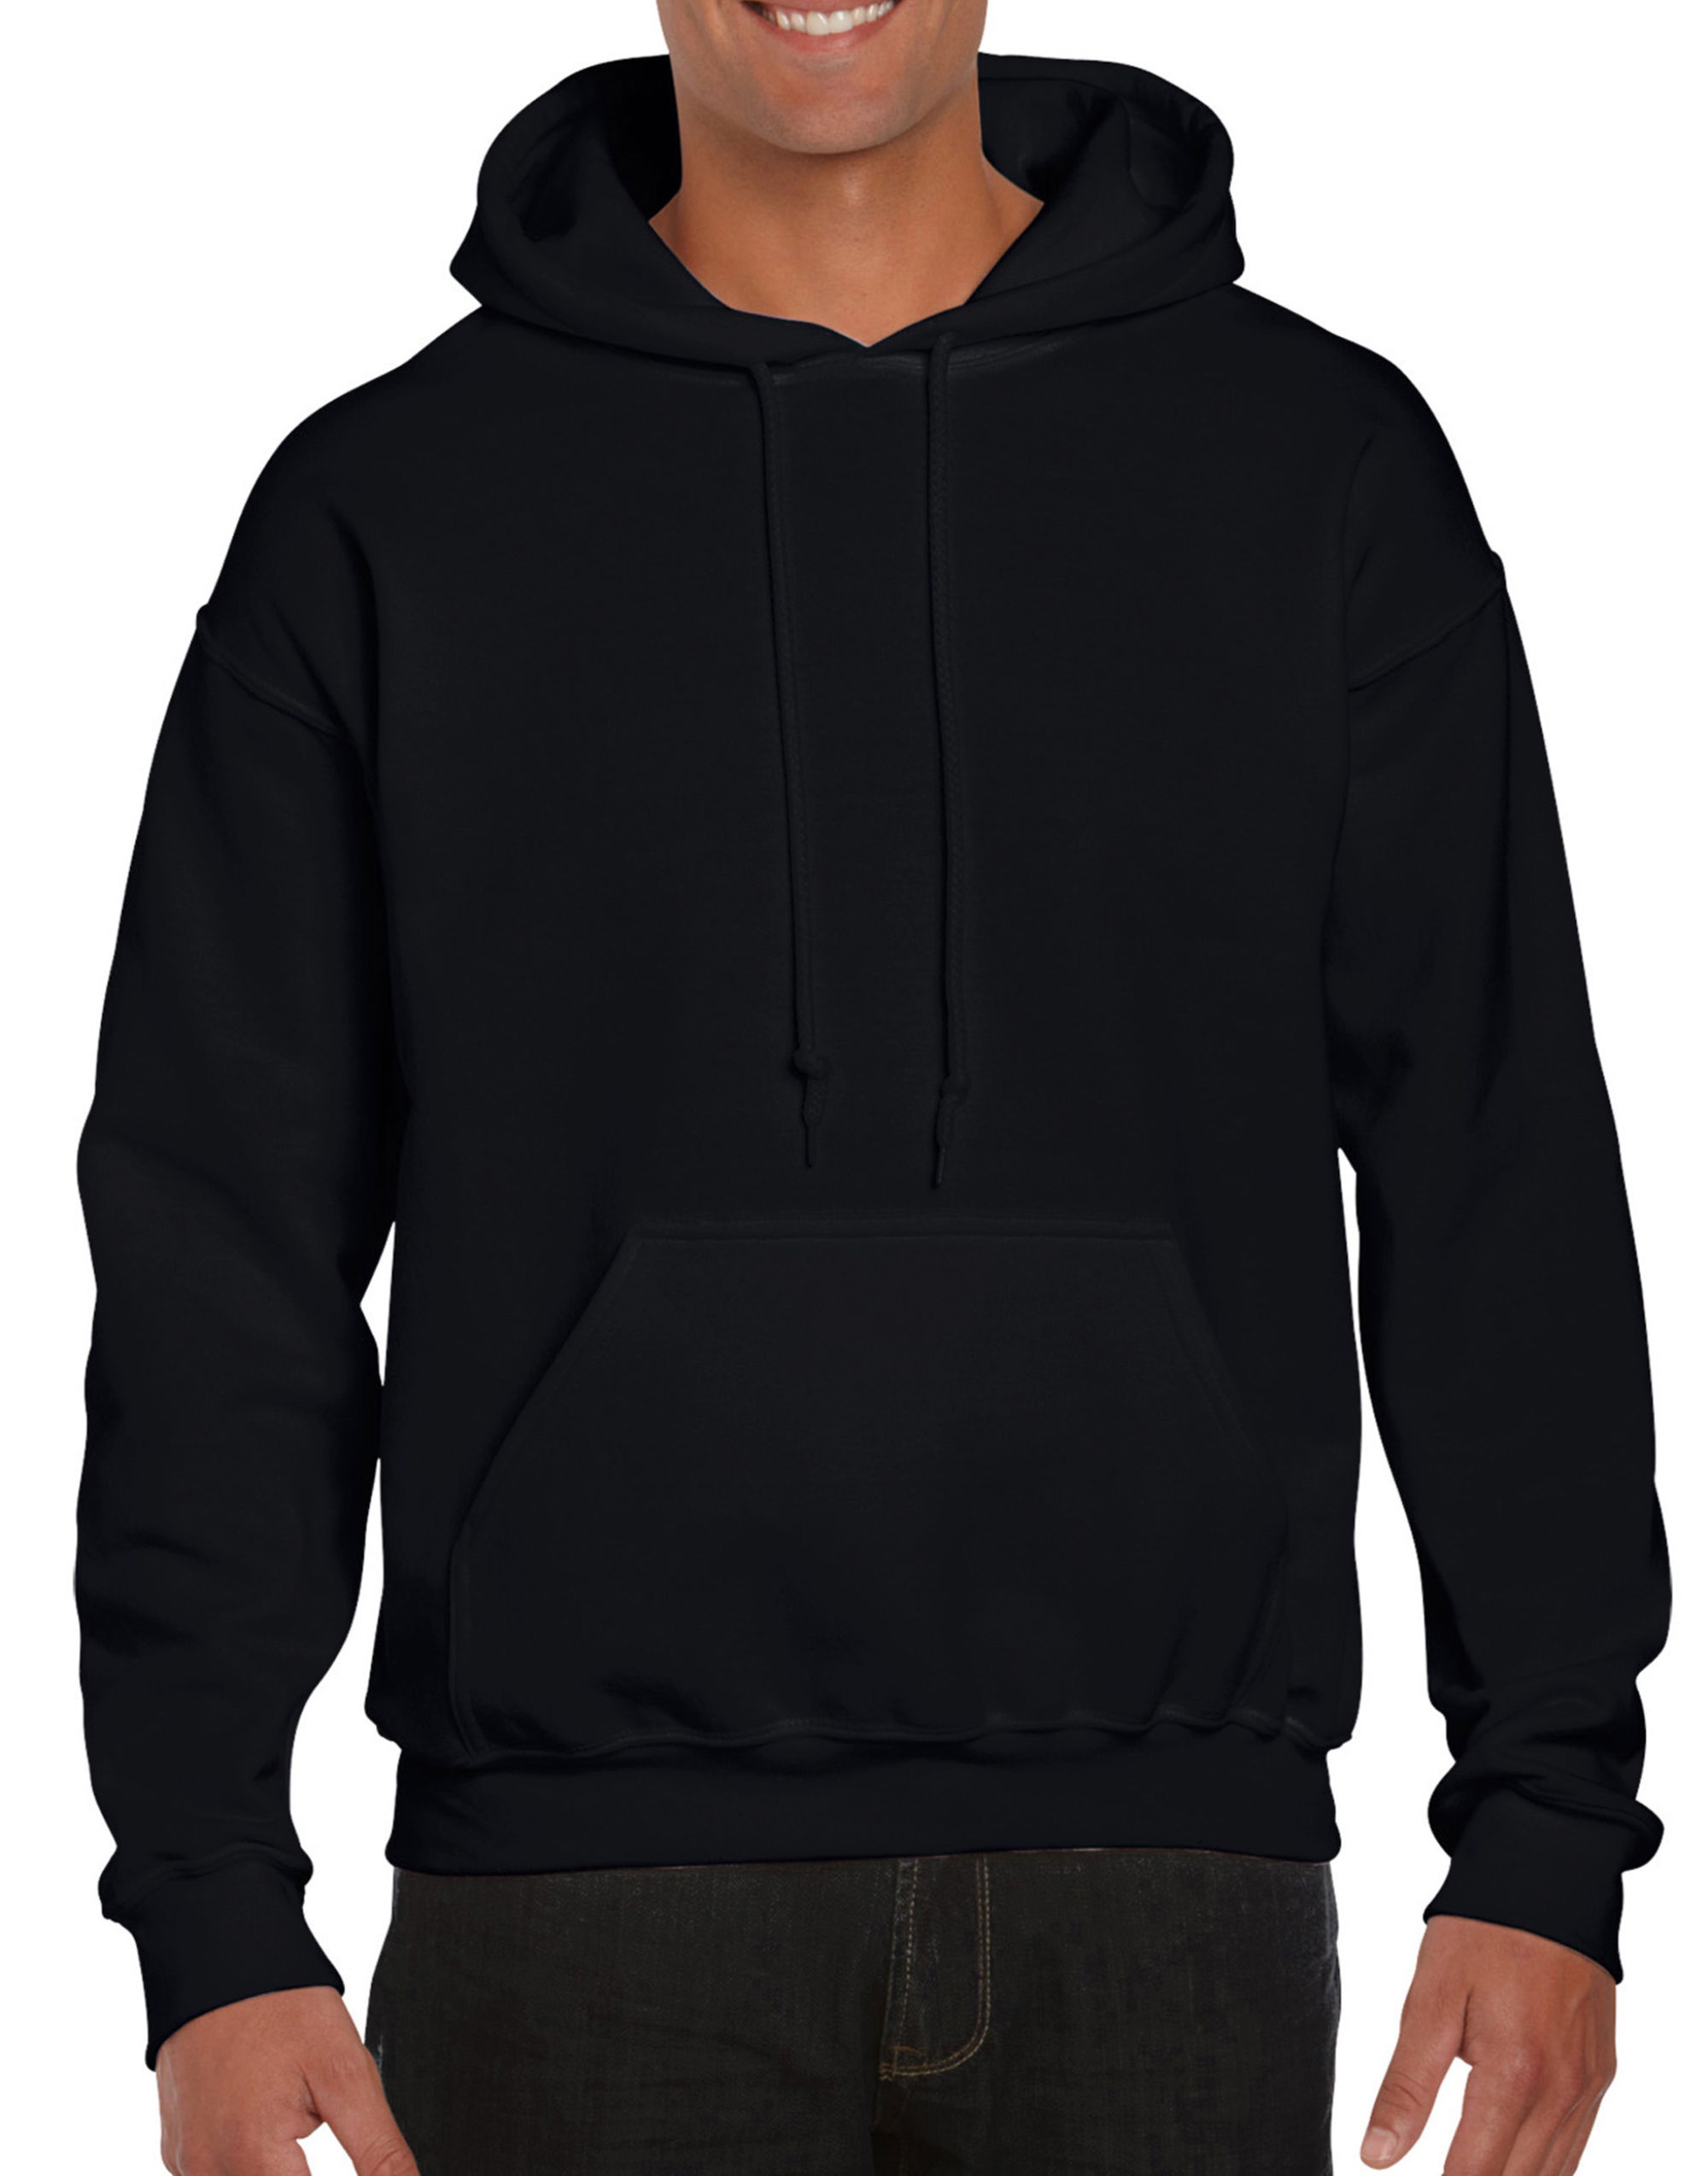 Dryblend Adult Hooded Sweatshirt